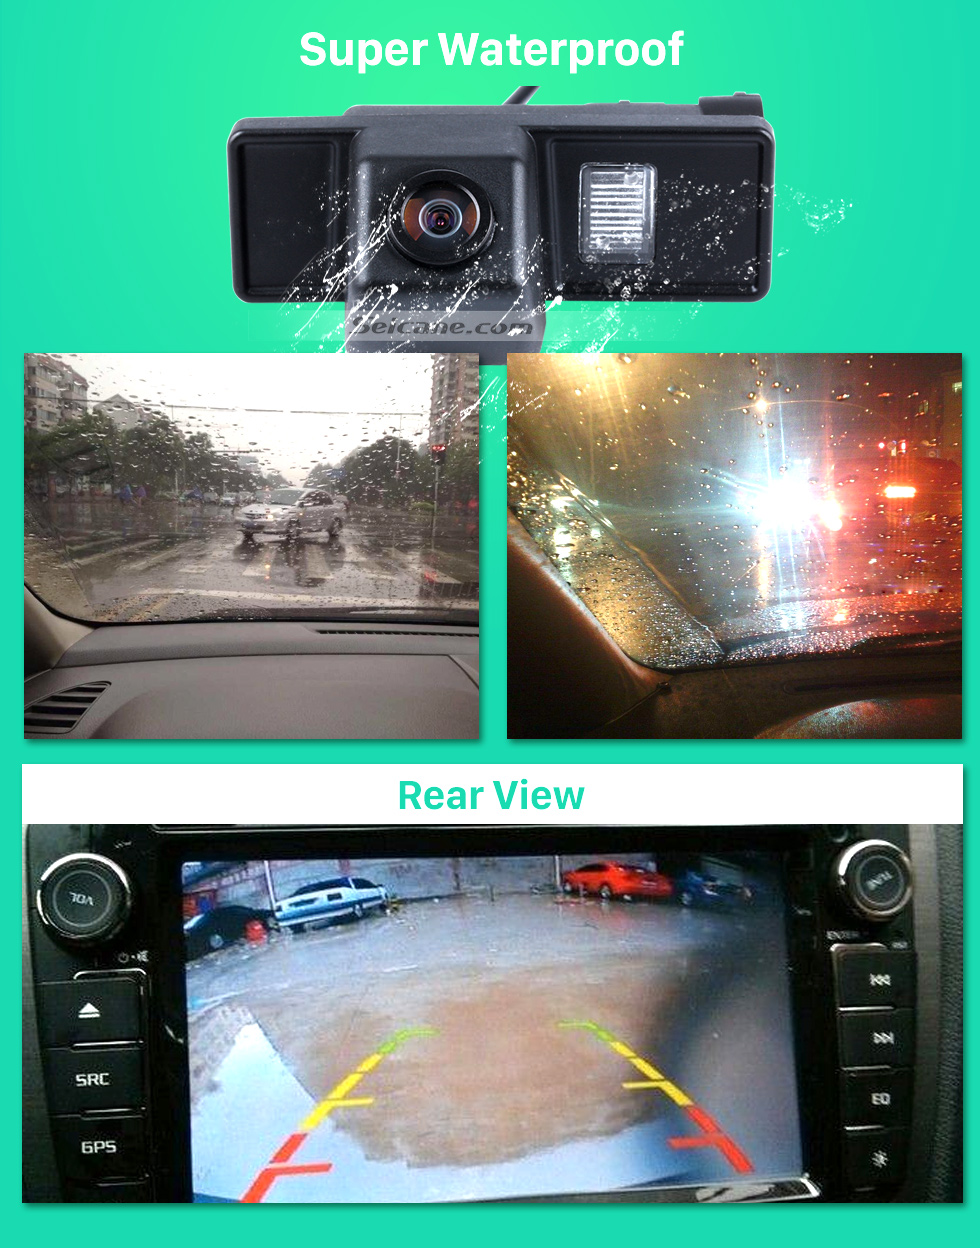 Super Waterproof Hot selling Mercedes-Benz Viano Vito Car Rear View Camera with four-color ruler and LR logo Night Vision free shipping